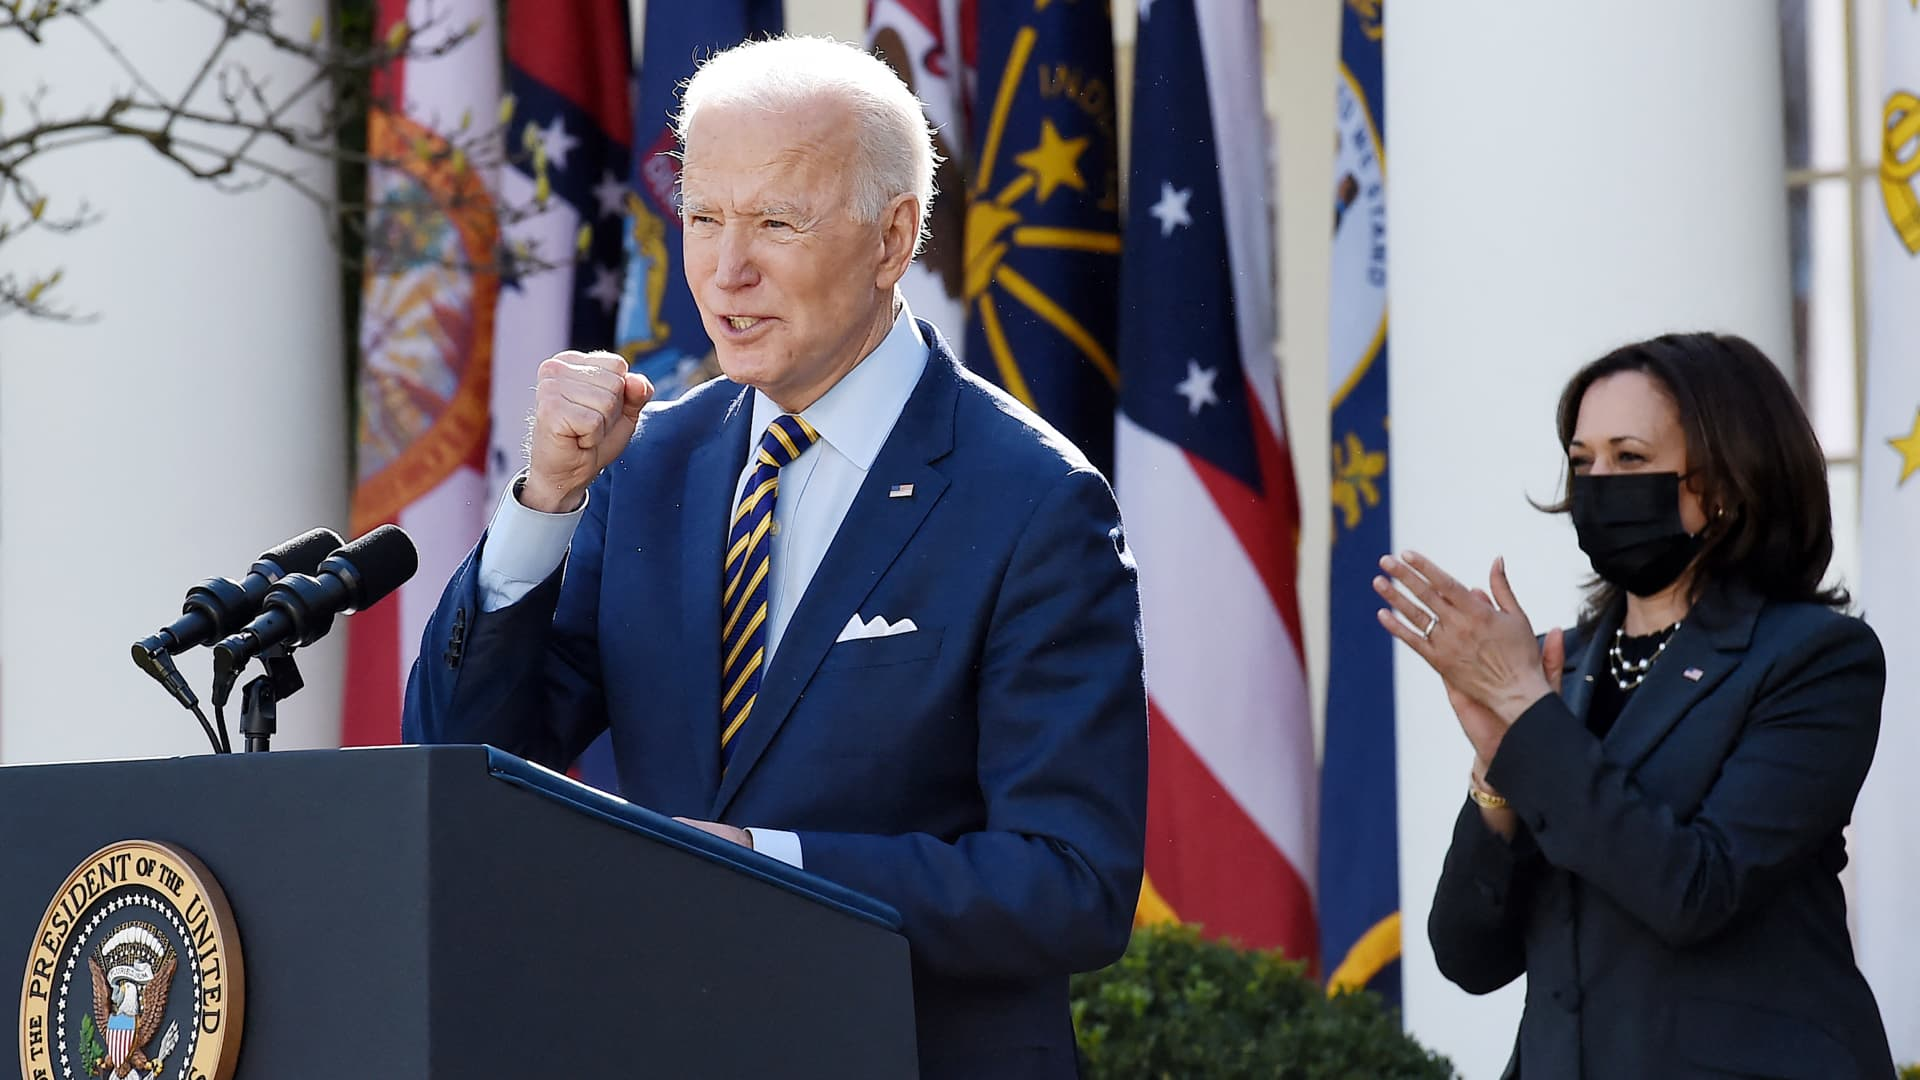 President Joe Biden, with Vice President Kamala Harris (R), speaks about the American Rescue Plan in the Rose Garden of the White House in Washington, DC, on March 12, 2021.